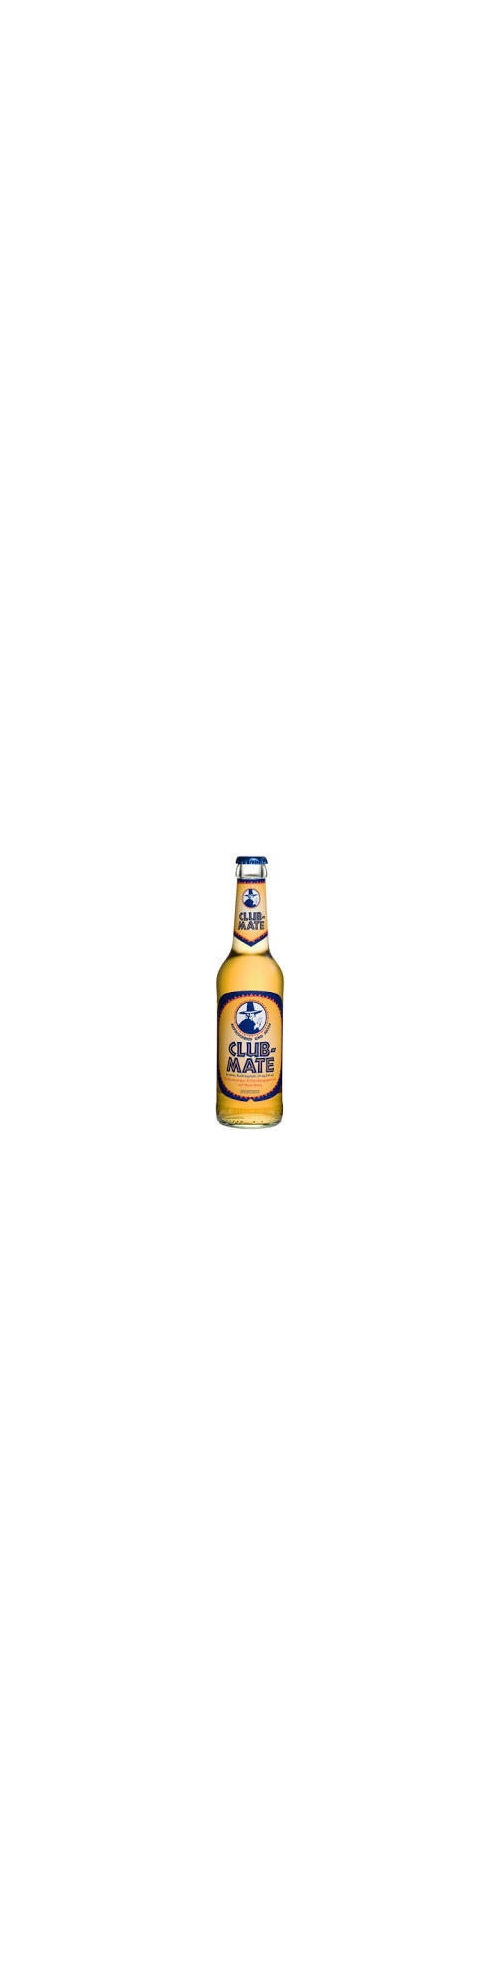 Club Mate 330ml bottle